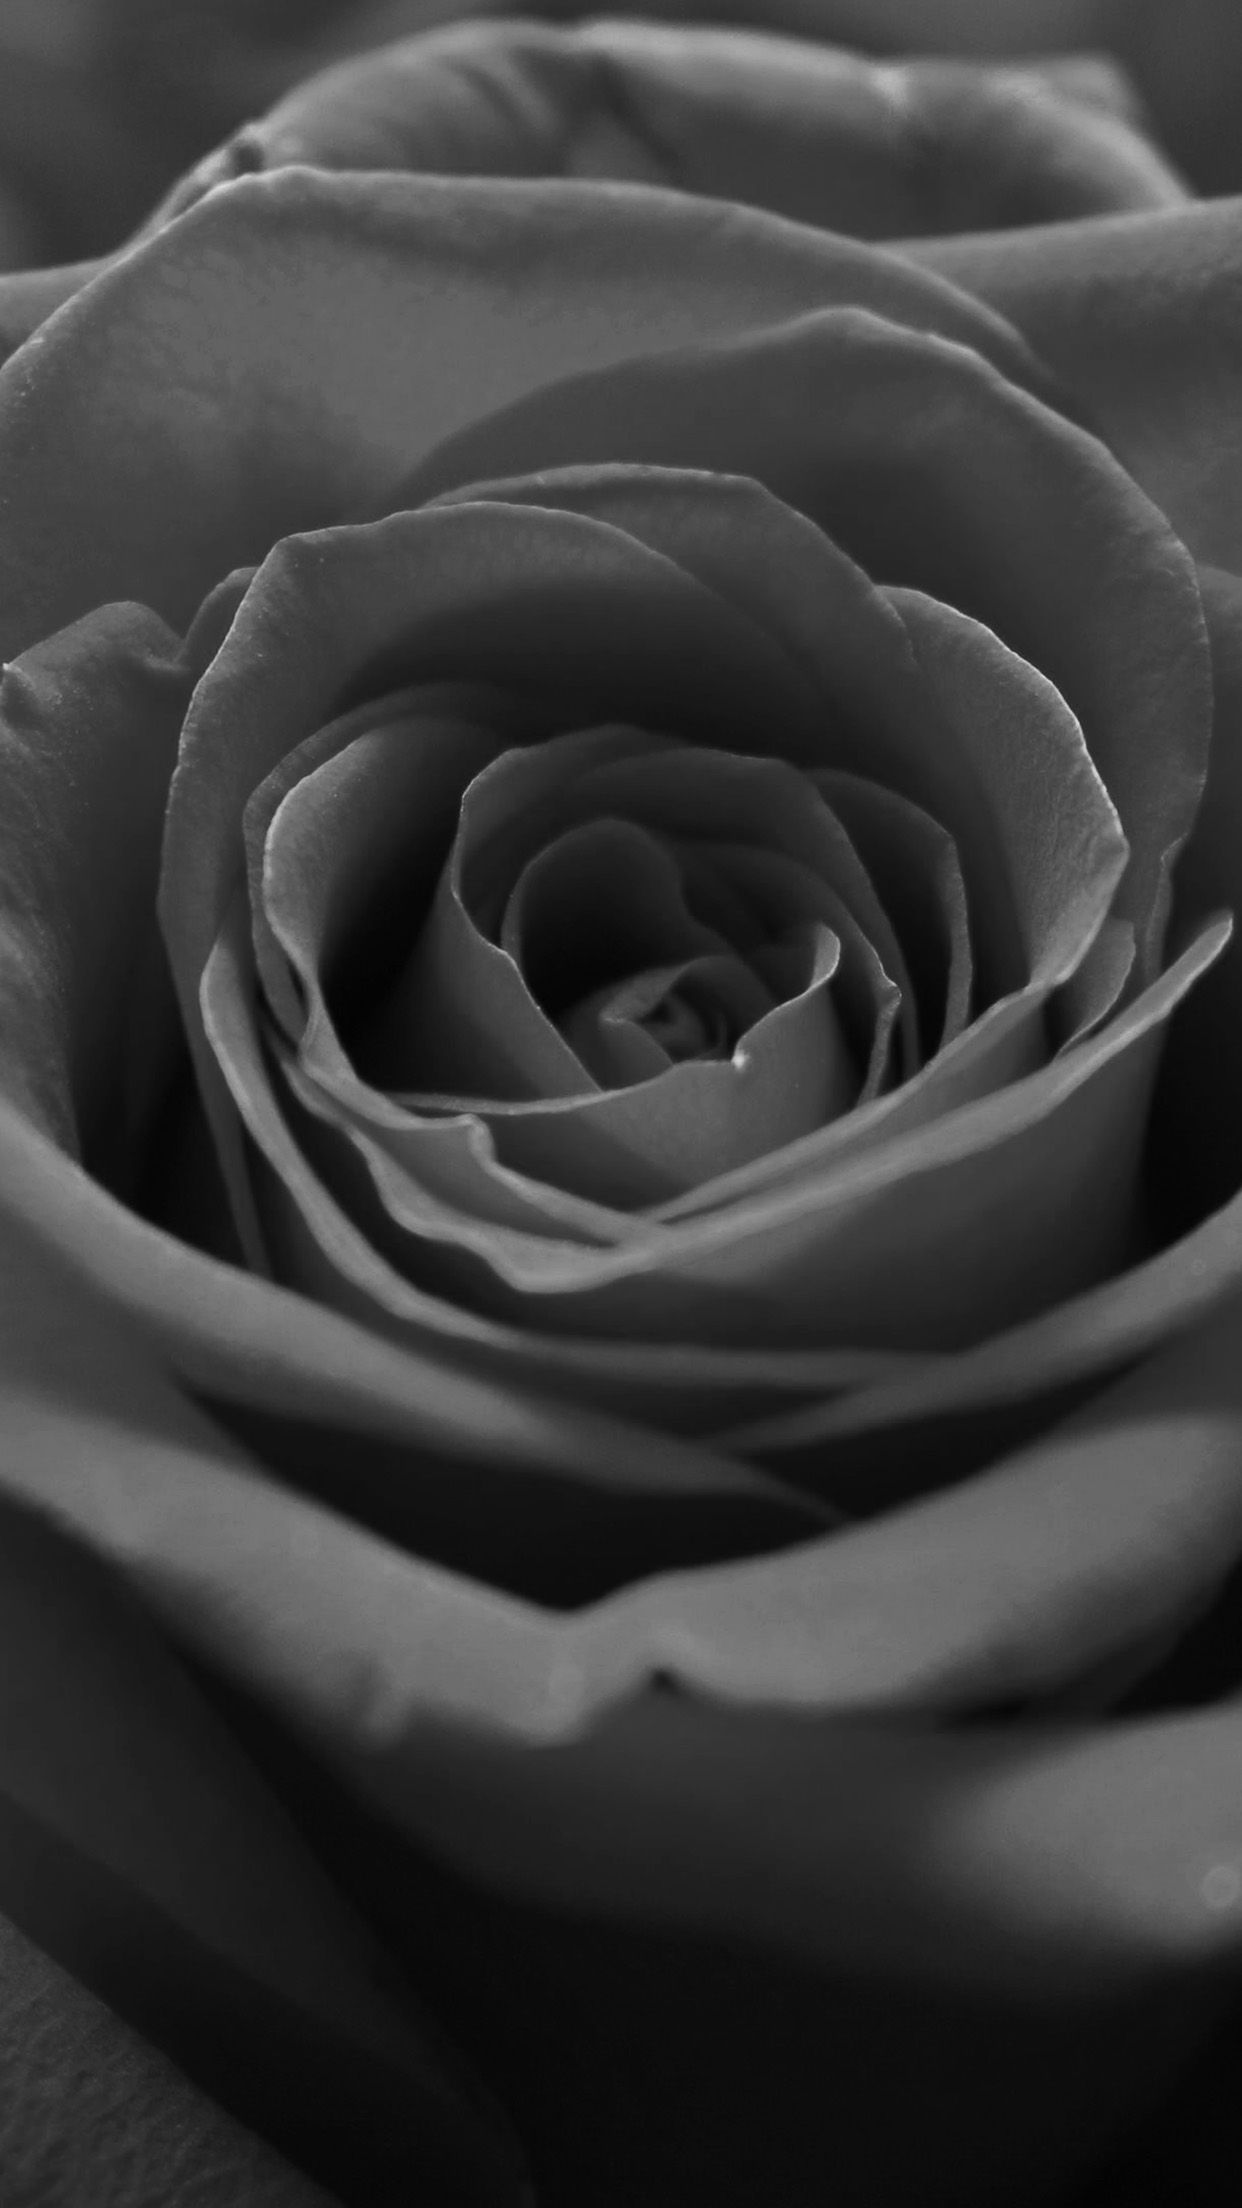 Black And White Macro Rose Flower Grey Dark Android Wallpaper